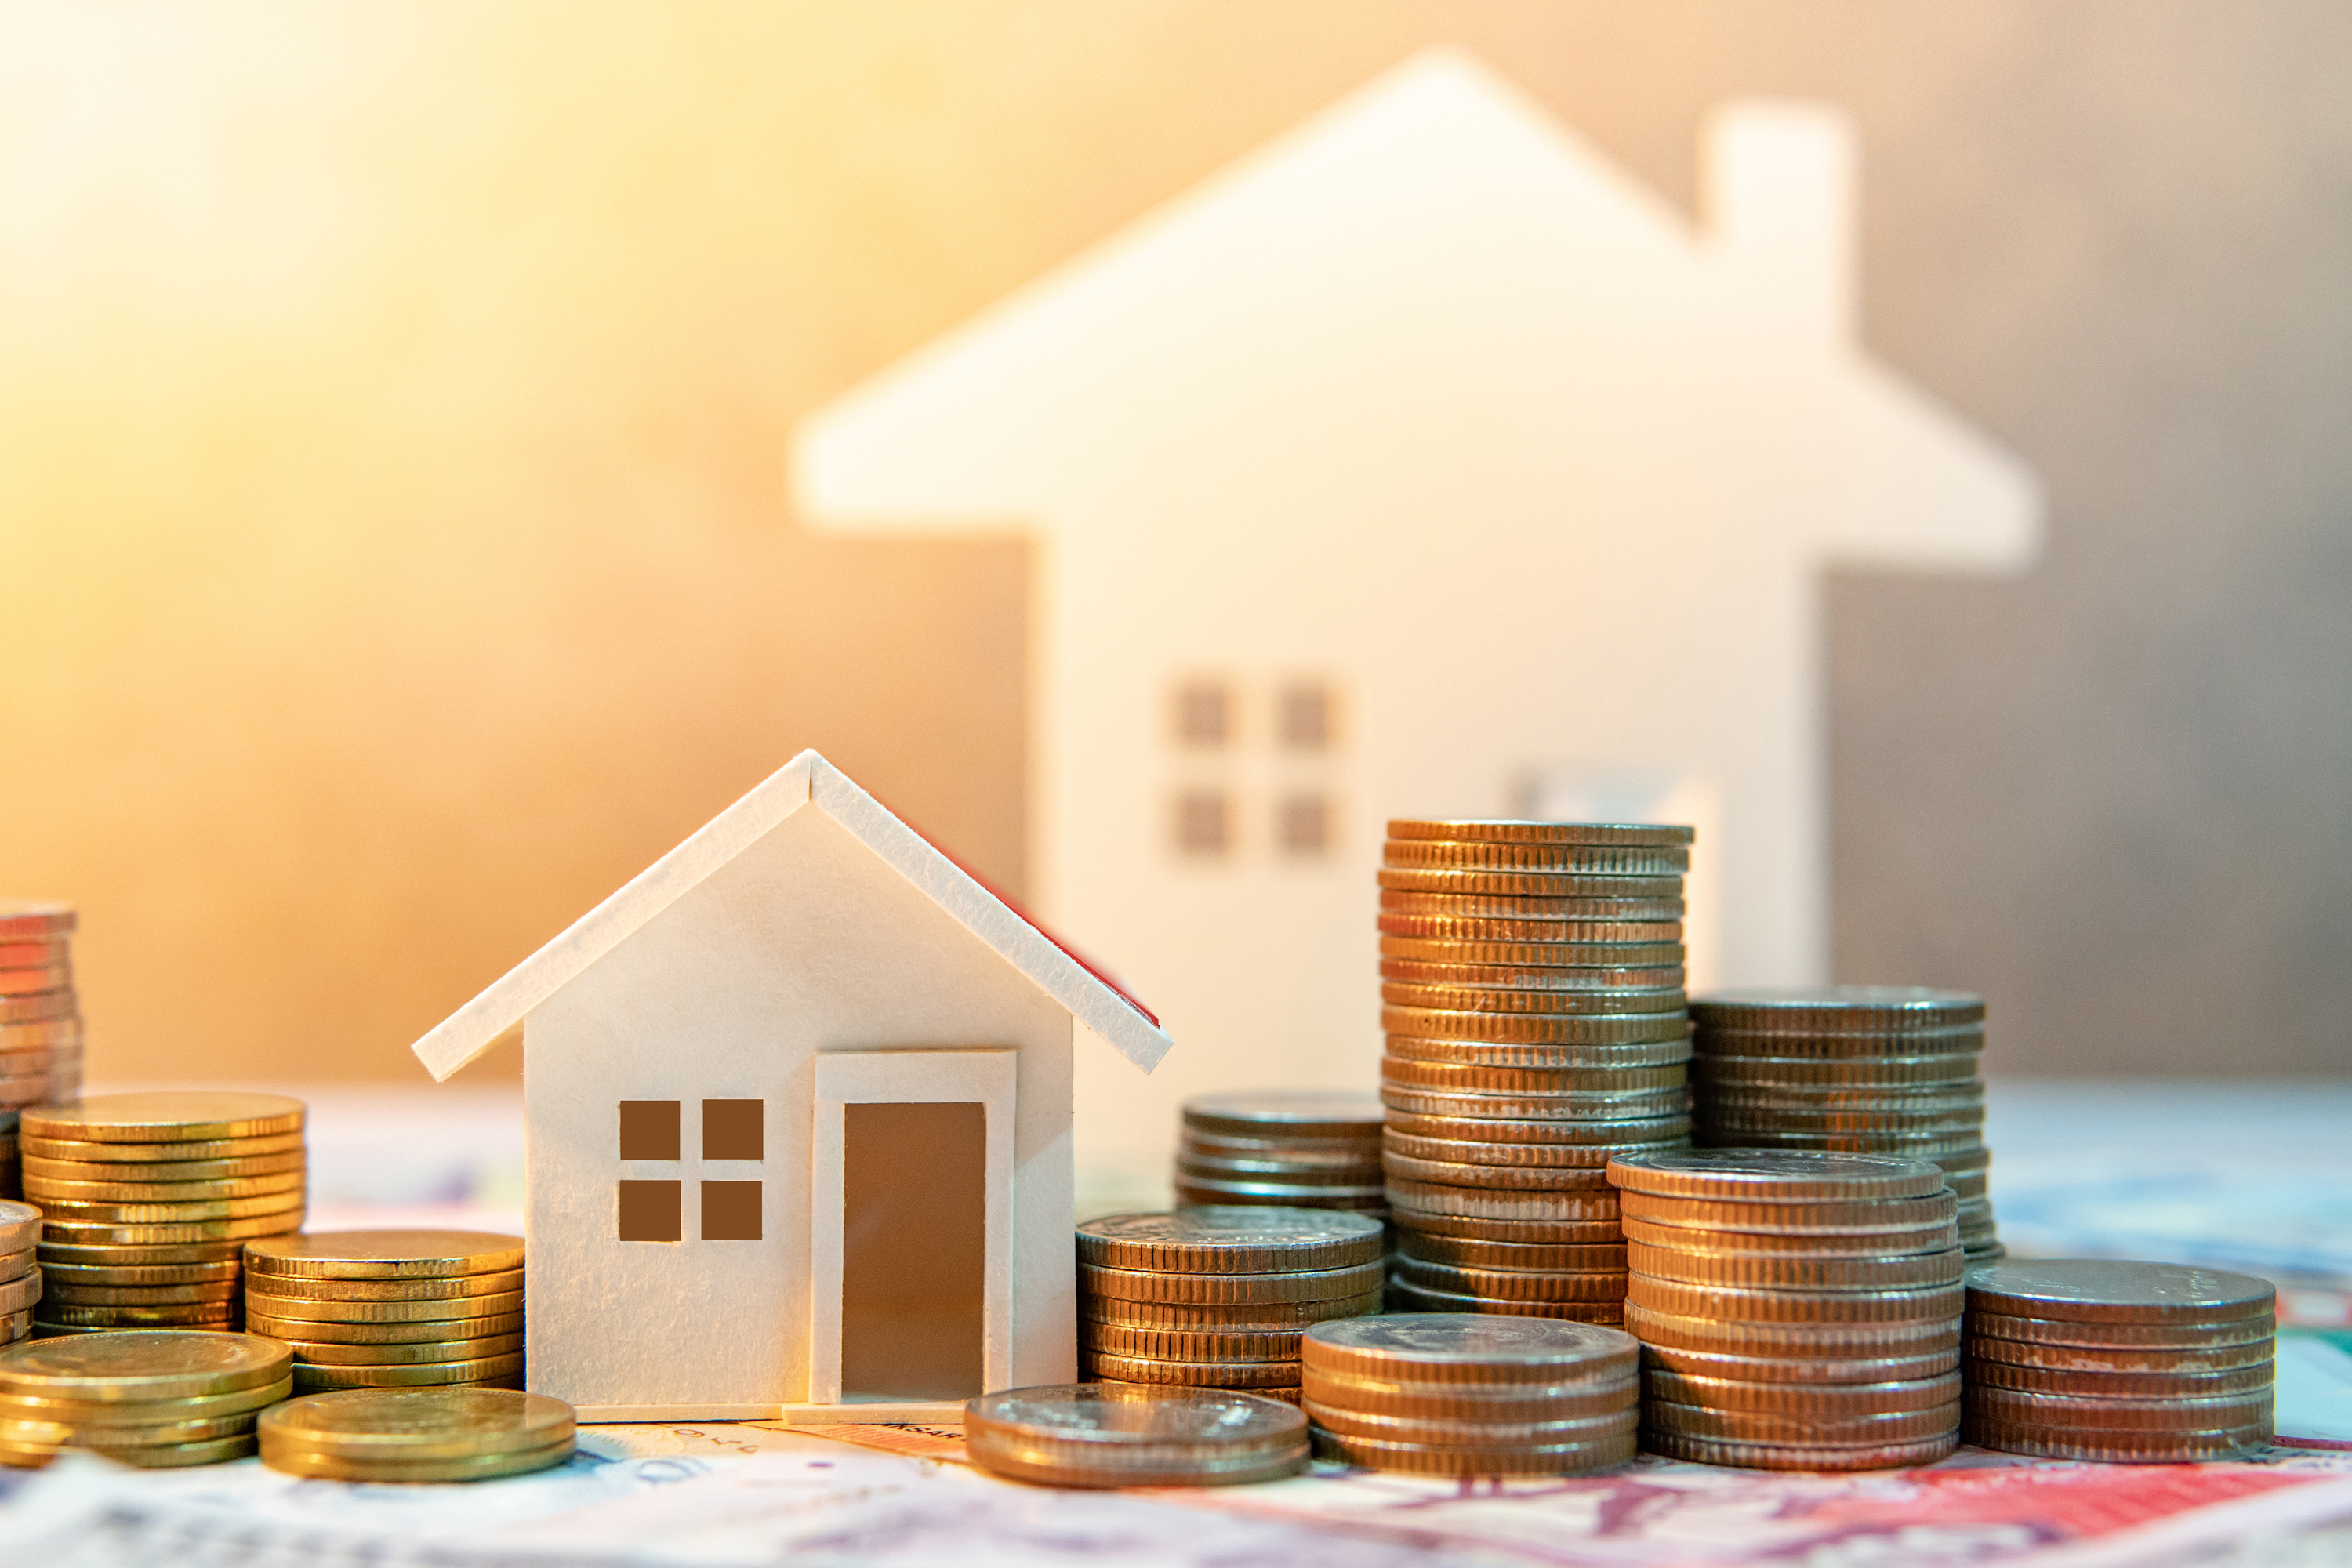 A Generic Photo of CUTOUT HOUSE AND MONEY (iStock/PA)